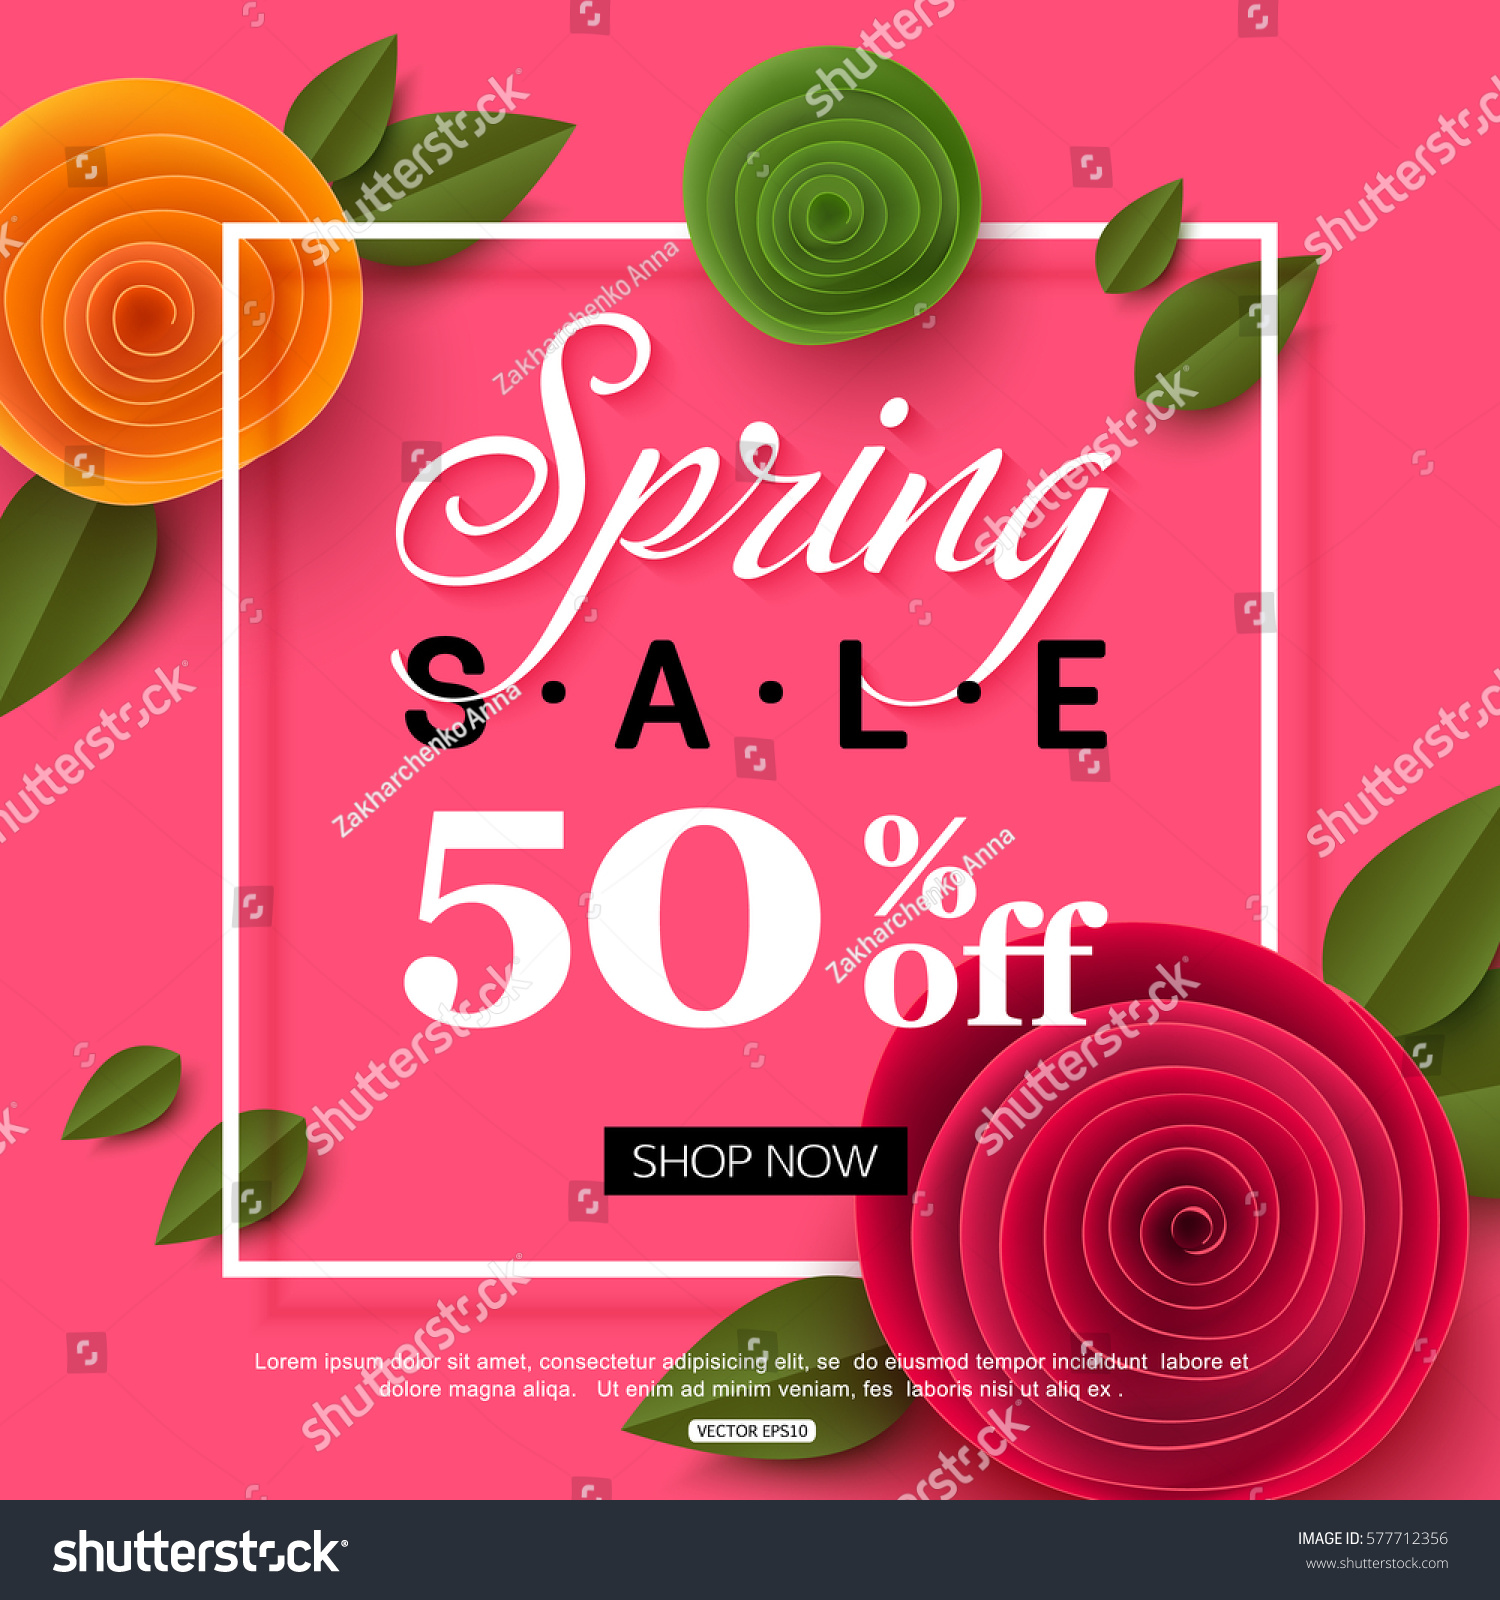 Spring sale banner paper flowers online stock vector 577712356 spring sale banner with paper flowers for online shopping advertising actions magazines and websites dhlflorist Image collections